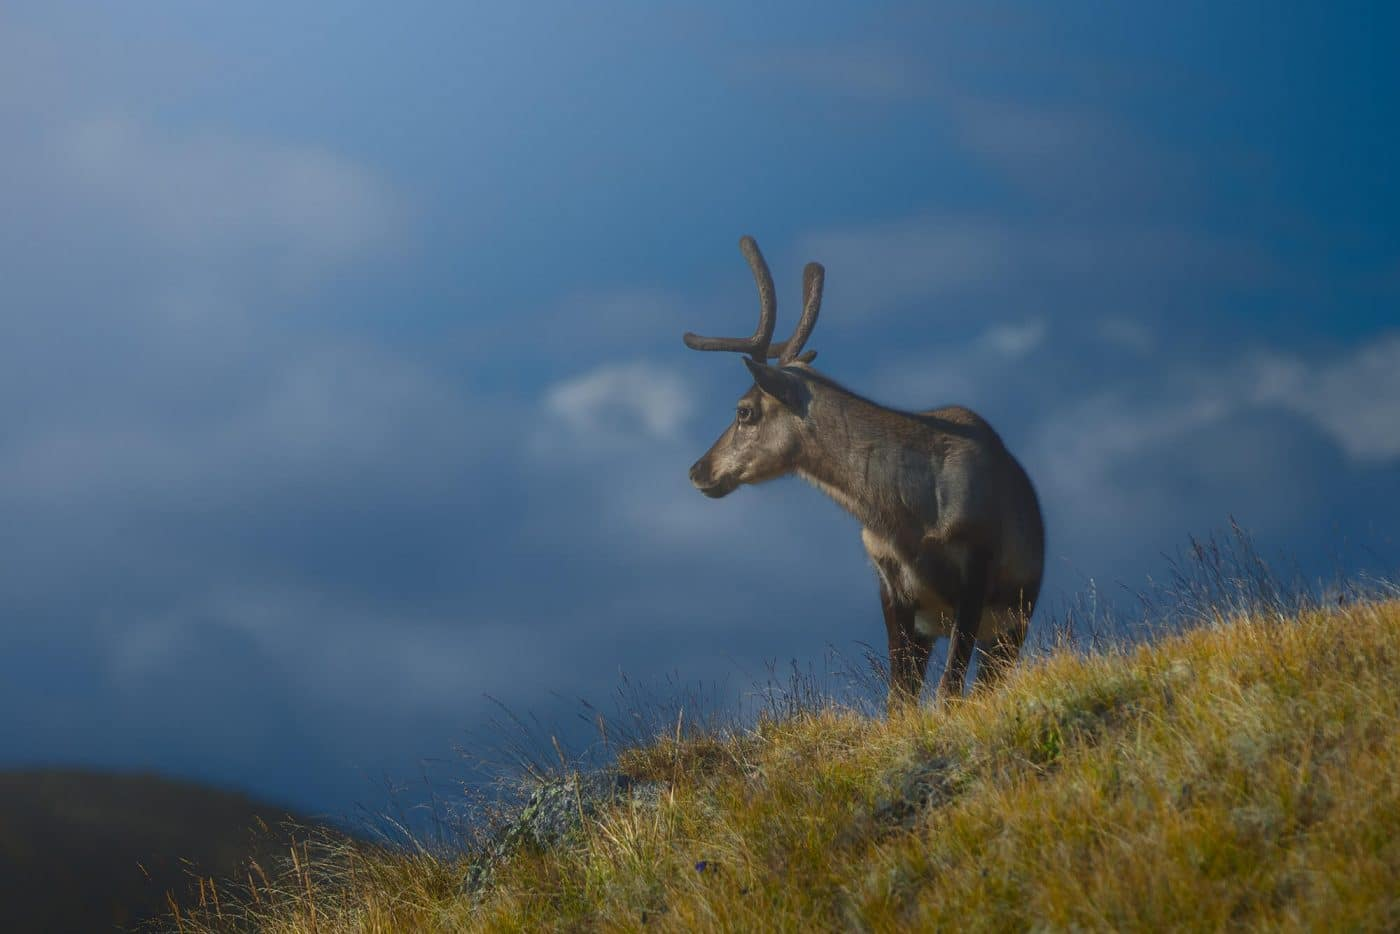 Greenland reindeer on hill. Photo by Karim Sahai